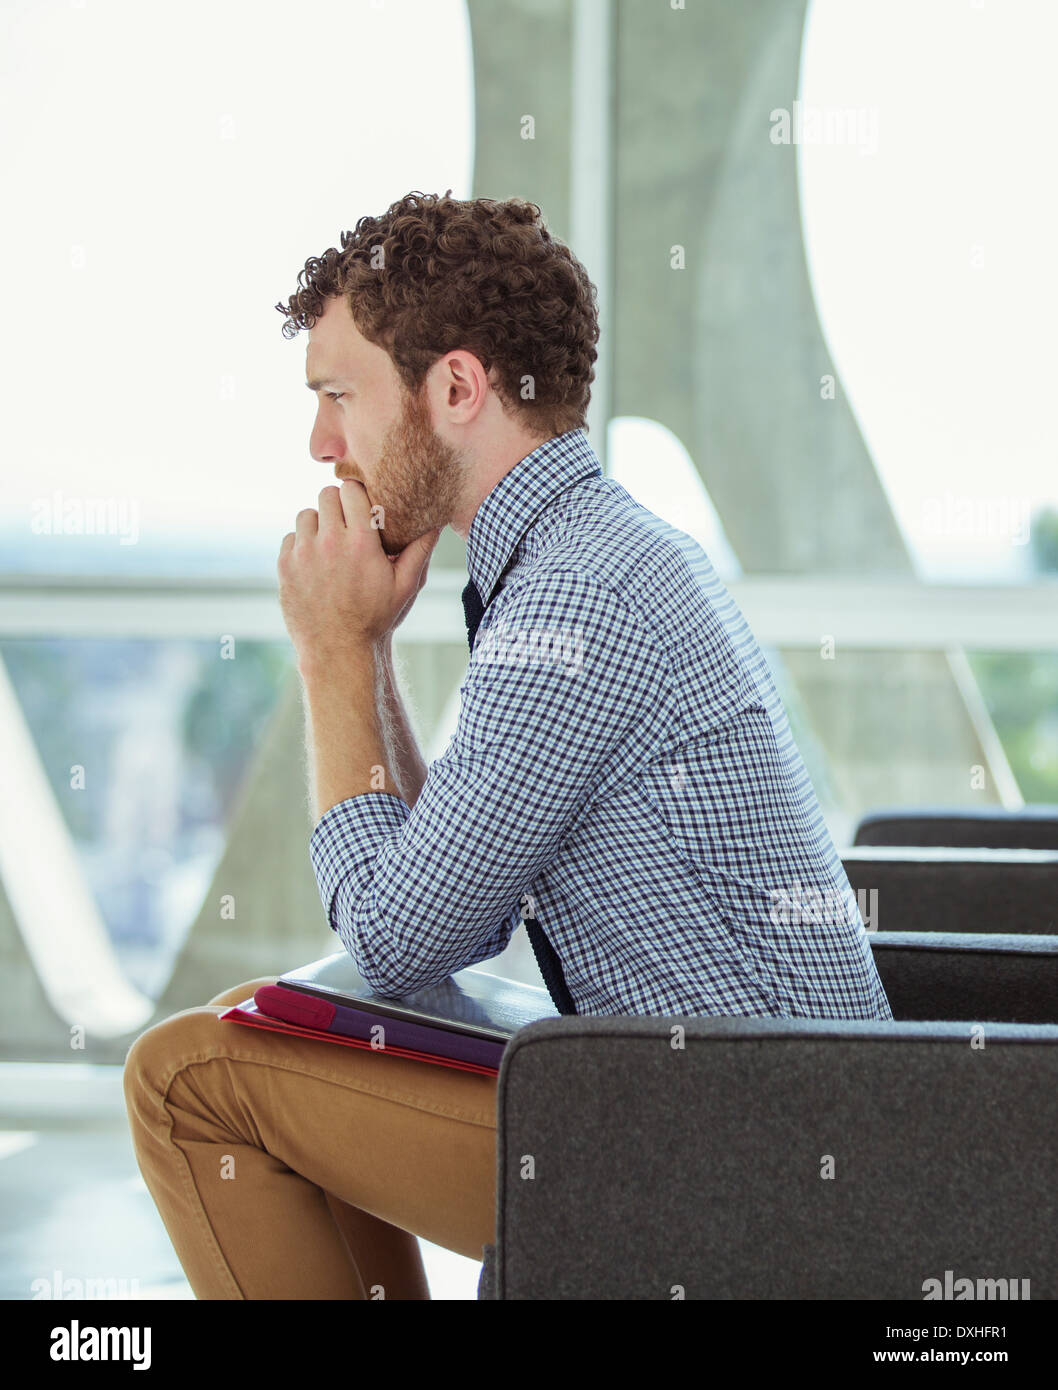 Pensive businessman sitting in office lobby - Stock Image